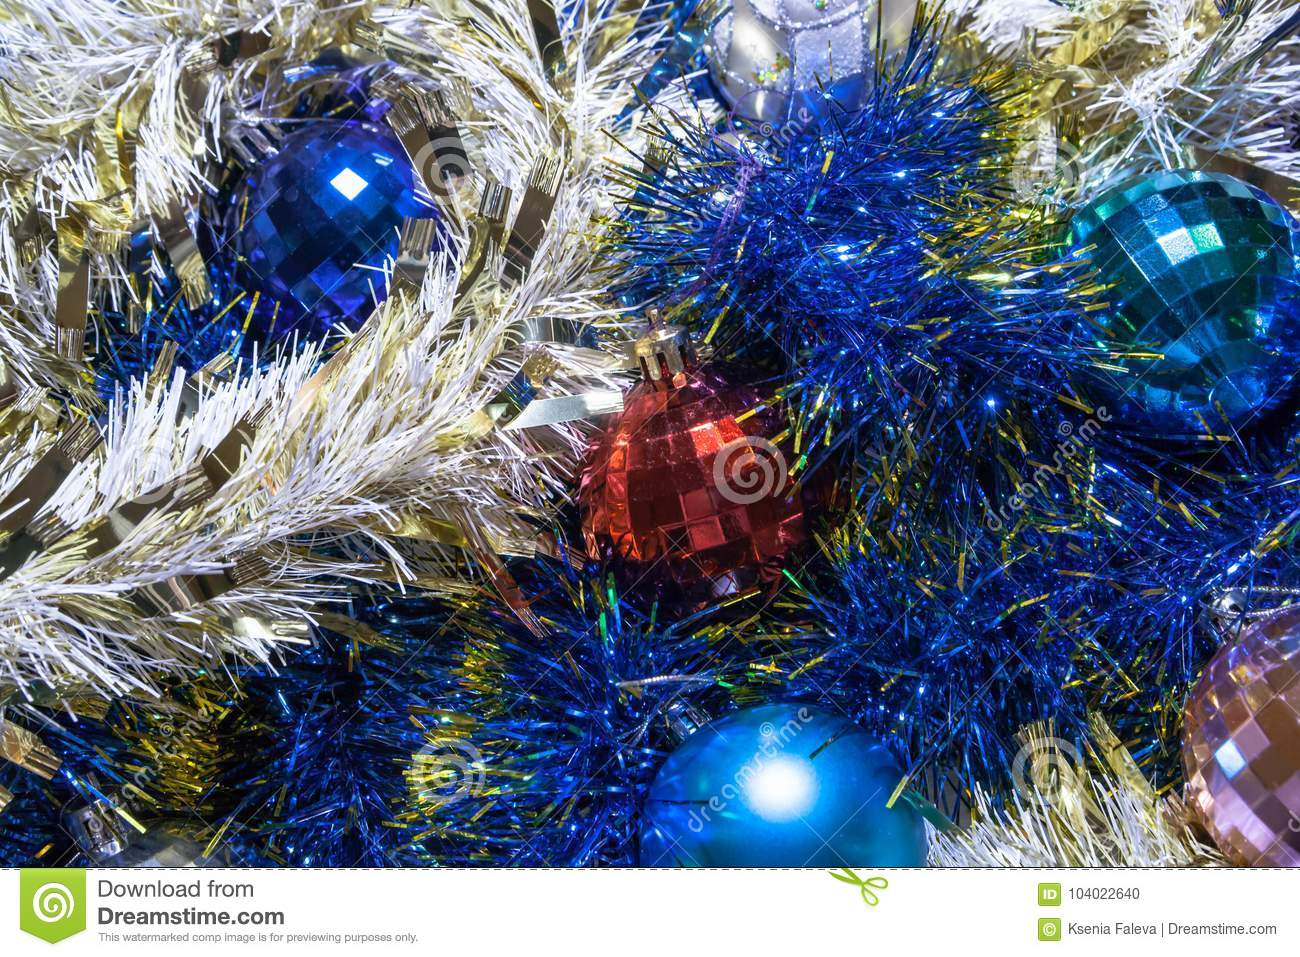 christmas decorations garlands are blue and gold the balls are red and blue - Blue And Gold Christmas Decorations